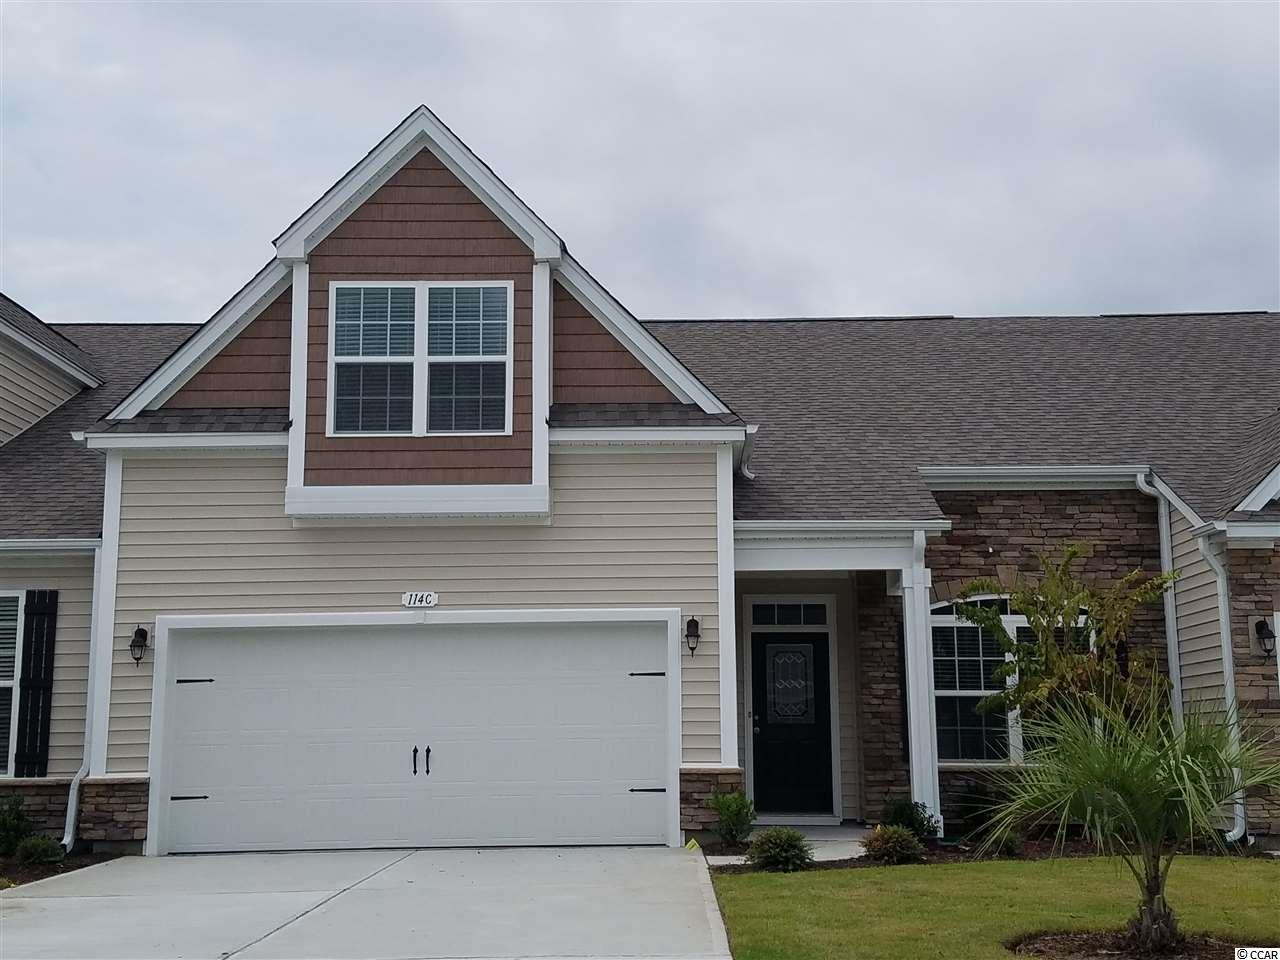 Townhouse MLS:1702356 Parmelee Townhomes - Murrells In  114C Parmelee Drive Murrells Inlet SC